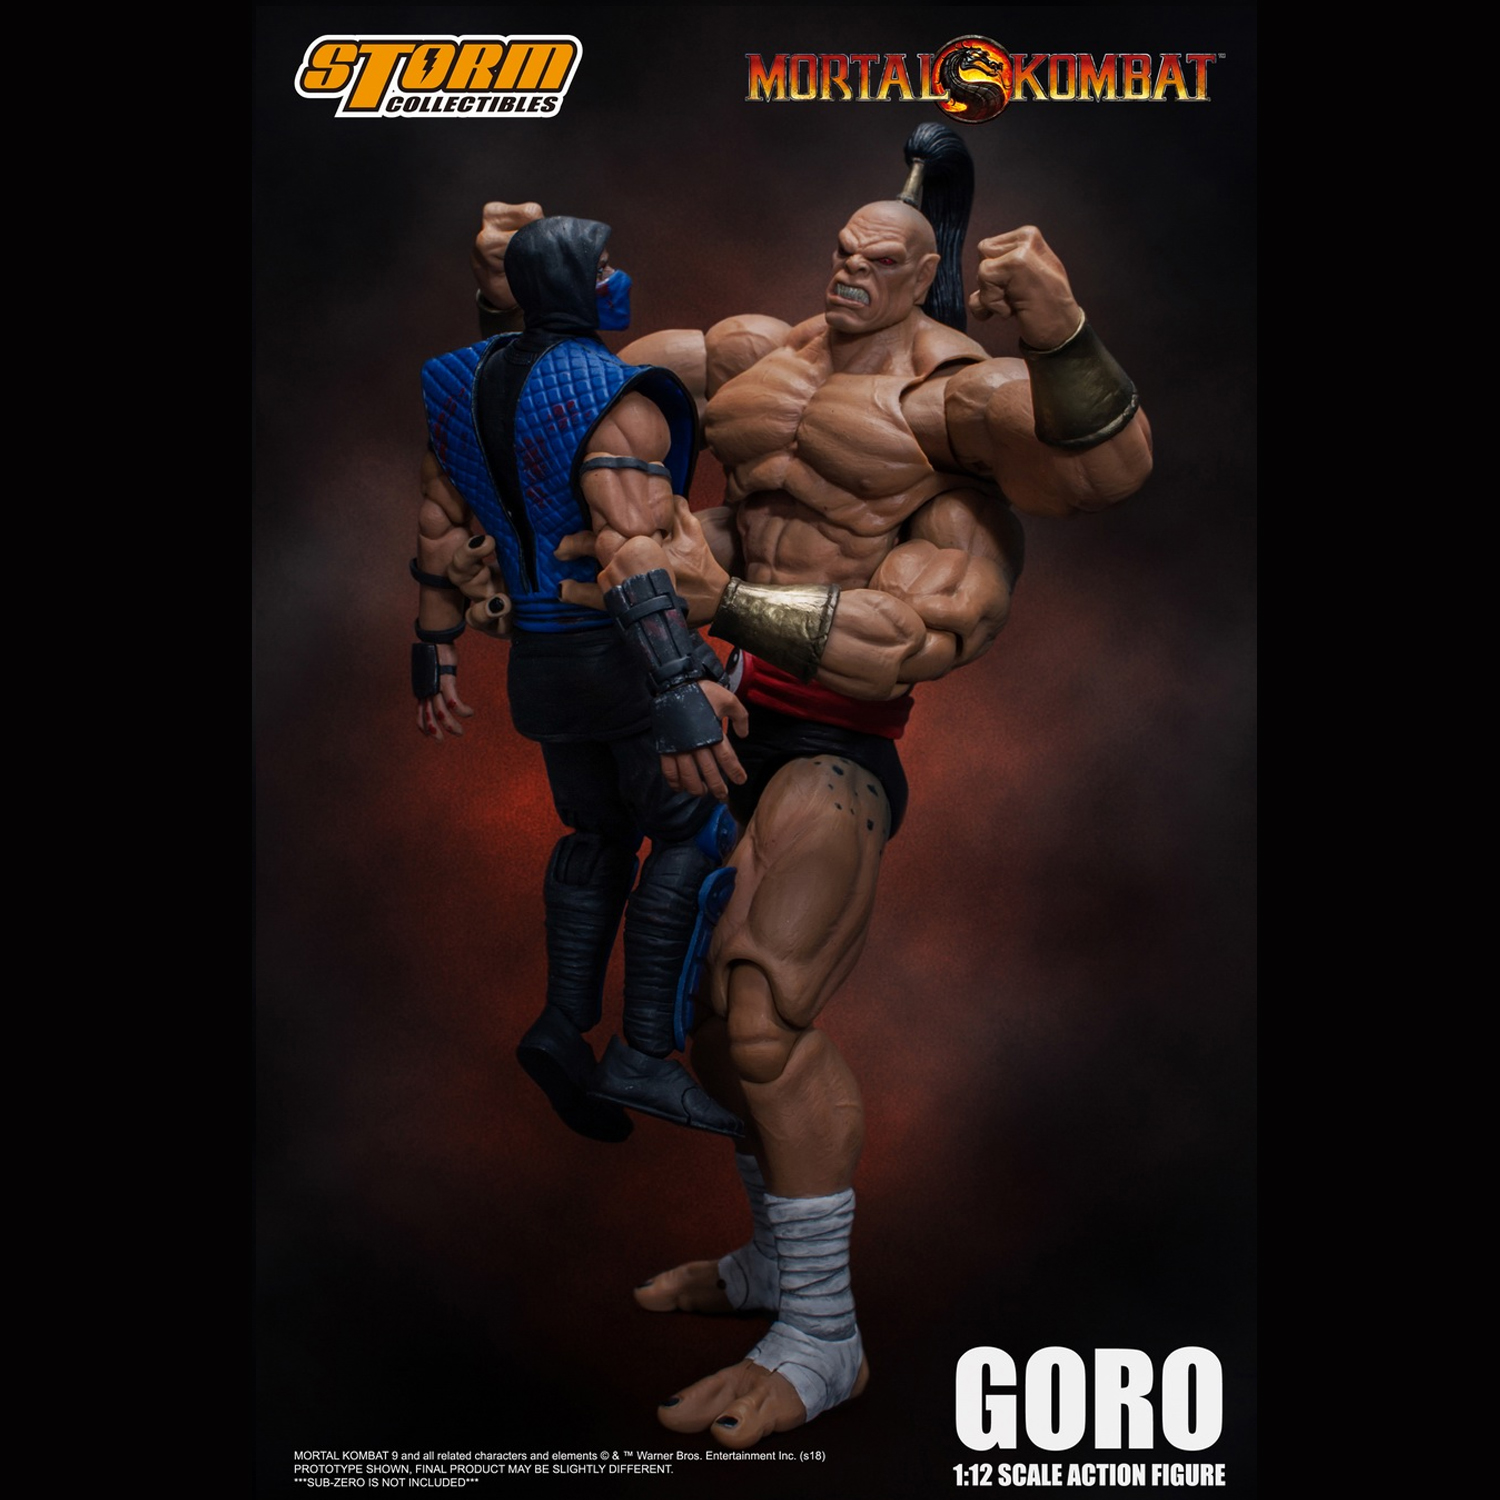 Details about Storm Toys 1/12 Prince GORO Mortal Kombat Series Action  Figure Collectibles New